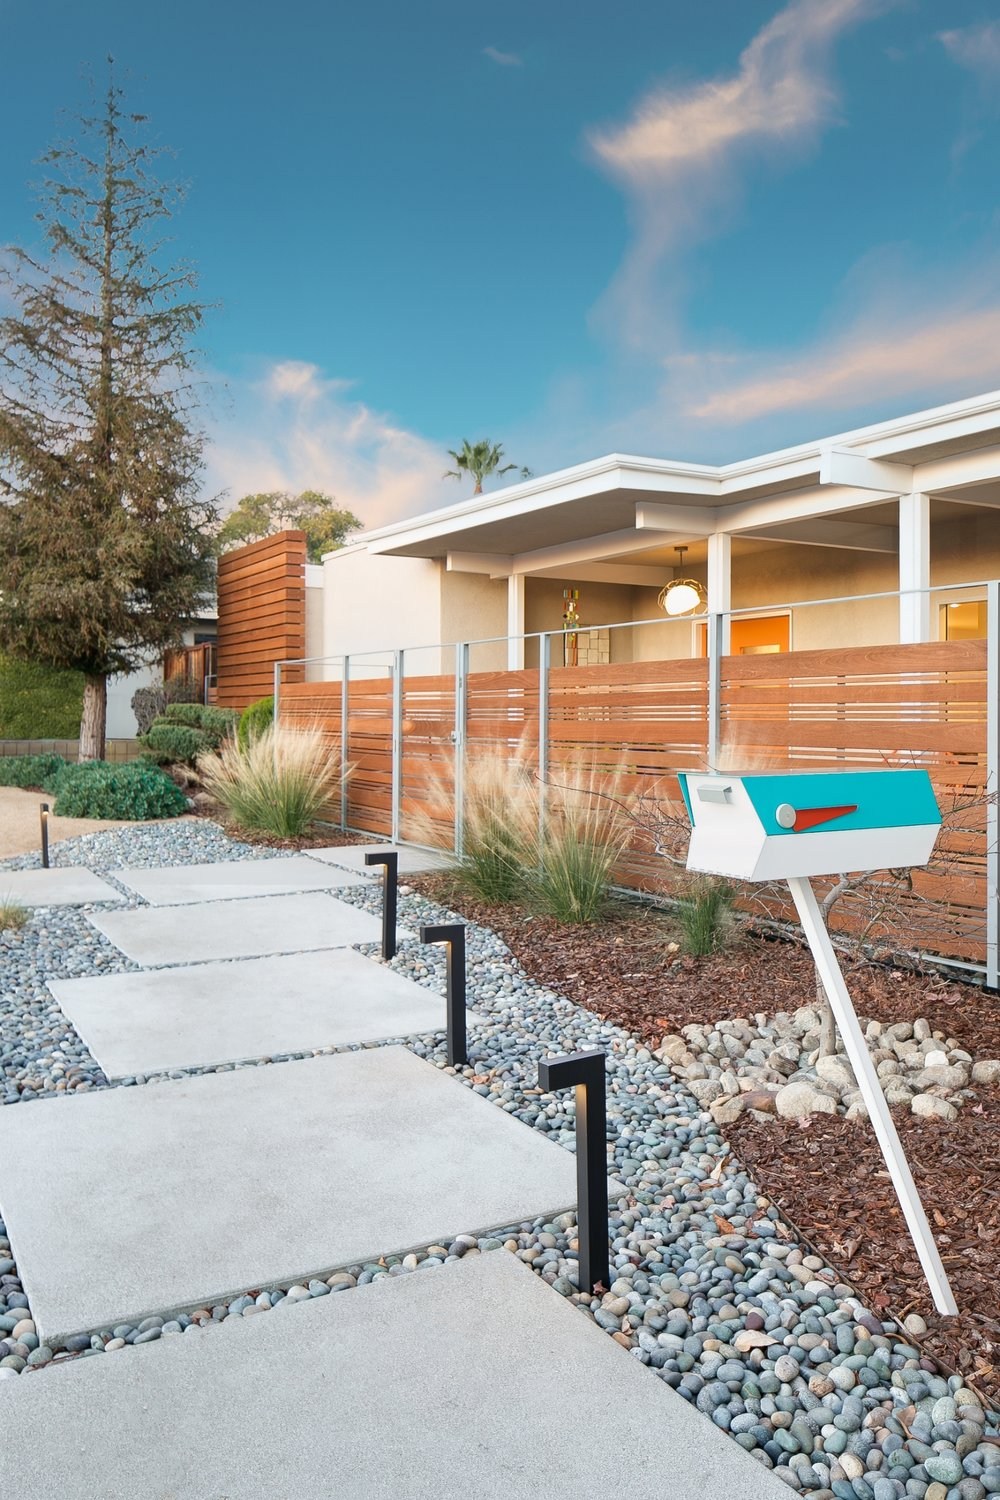 Mid-Century-Modern-Exterior--Teal-Mailbox-Concrete-Path-Wood-Fence.jpg